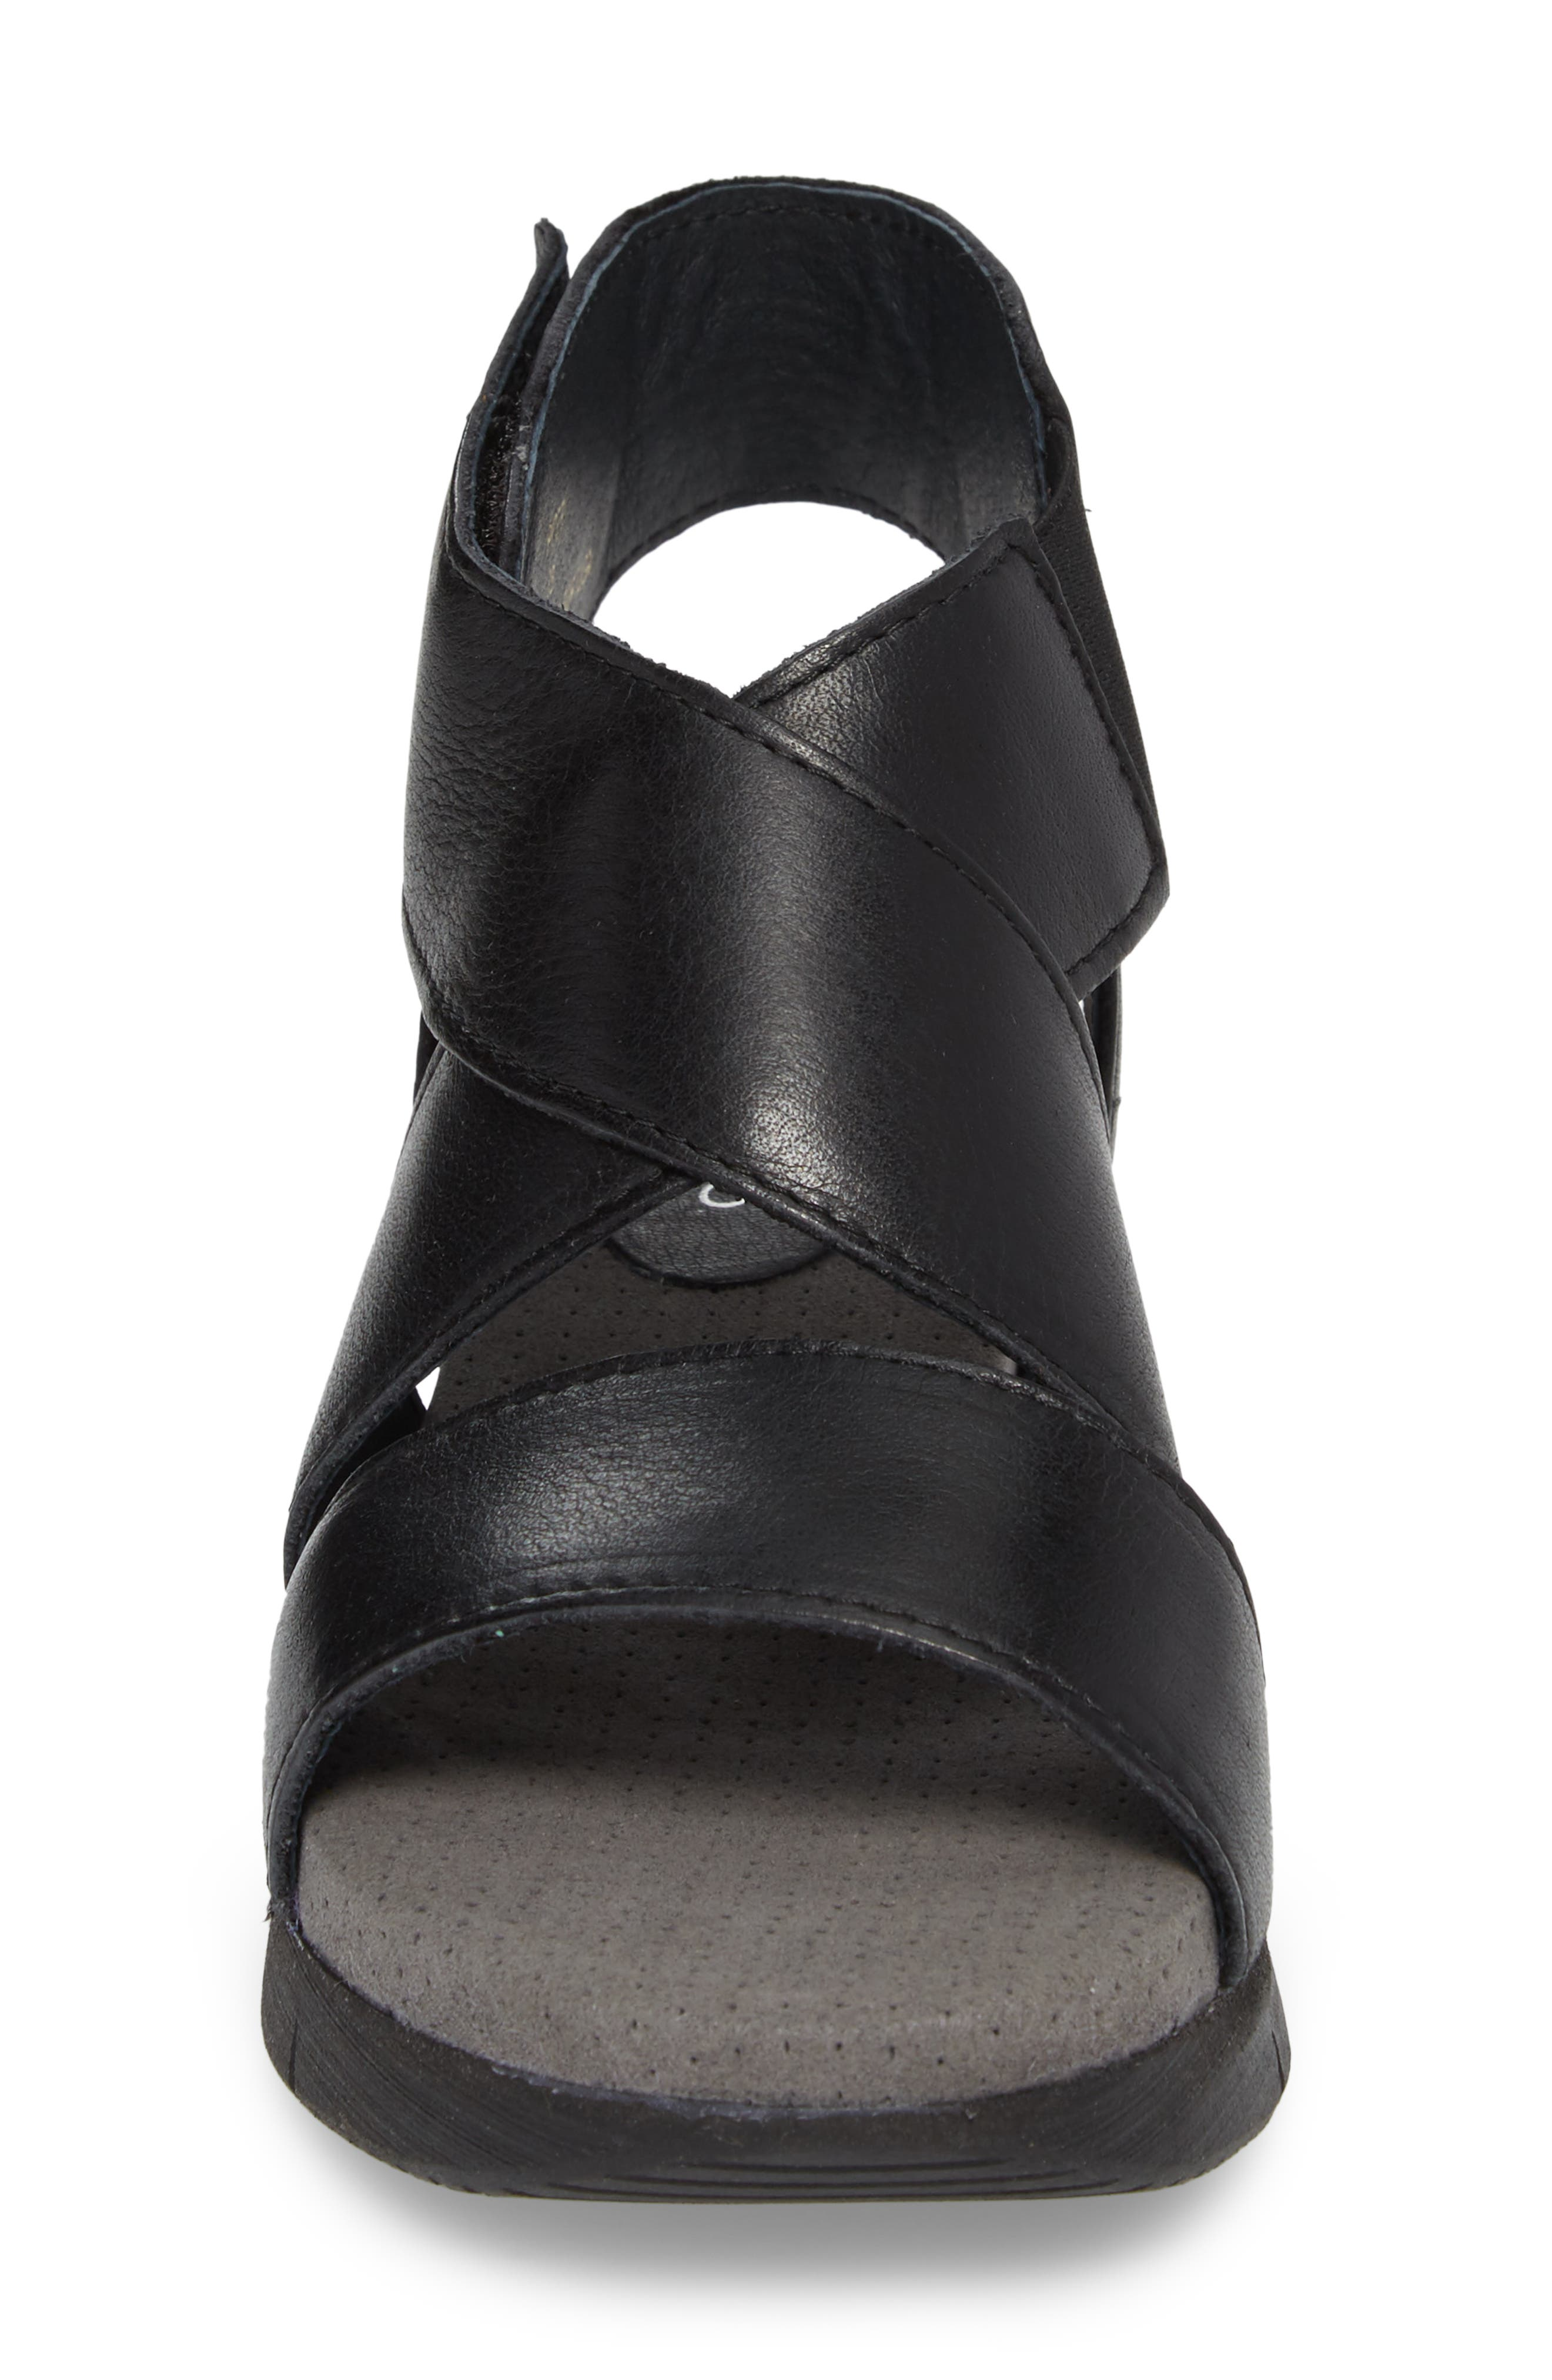 BOS. & CO., Piper Wedge Sandal, Alternate thumbnail 4, color, BLACK SAUVAGE LEATHER